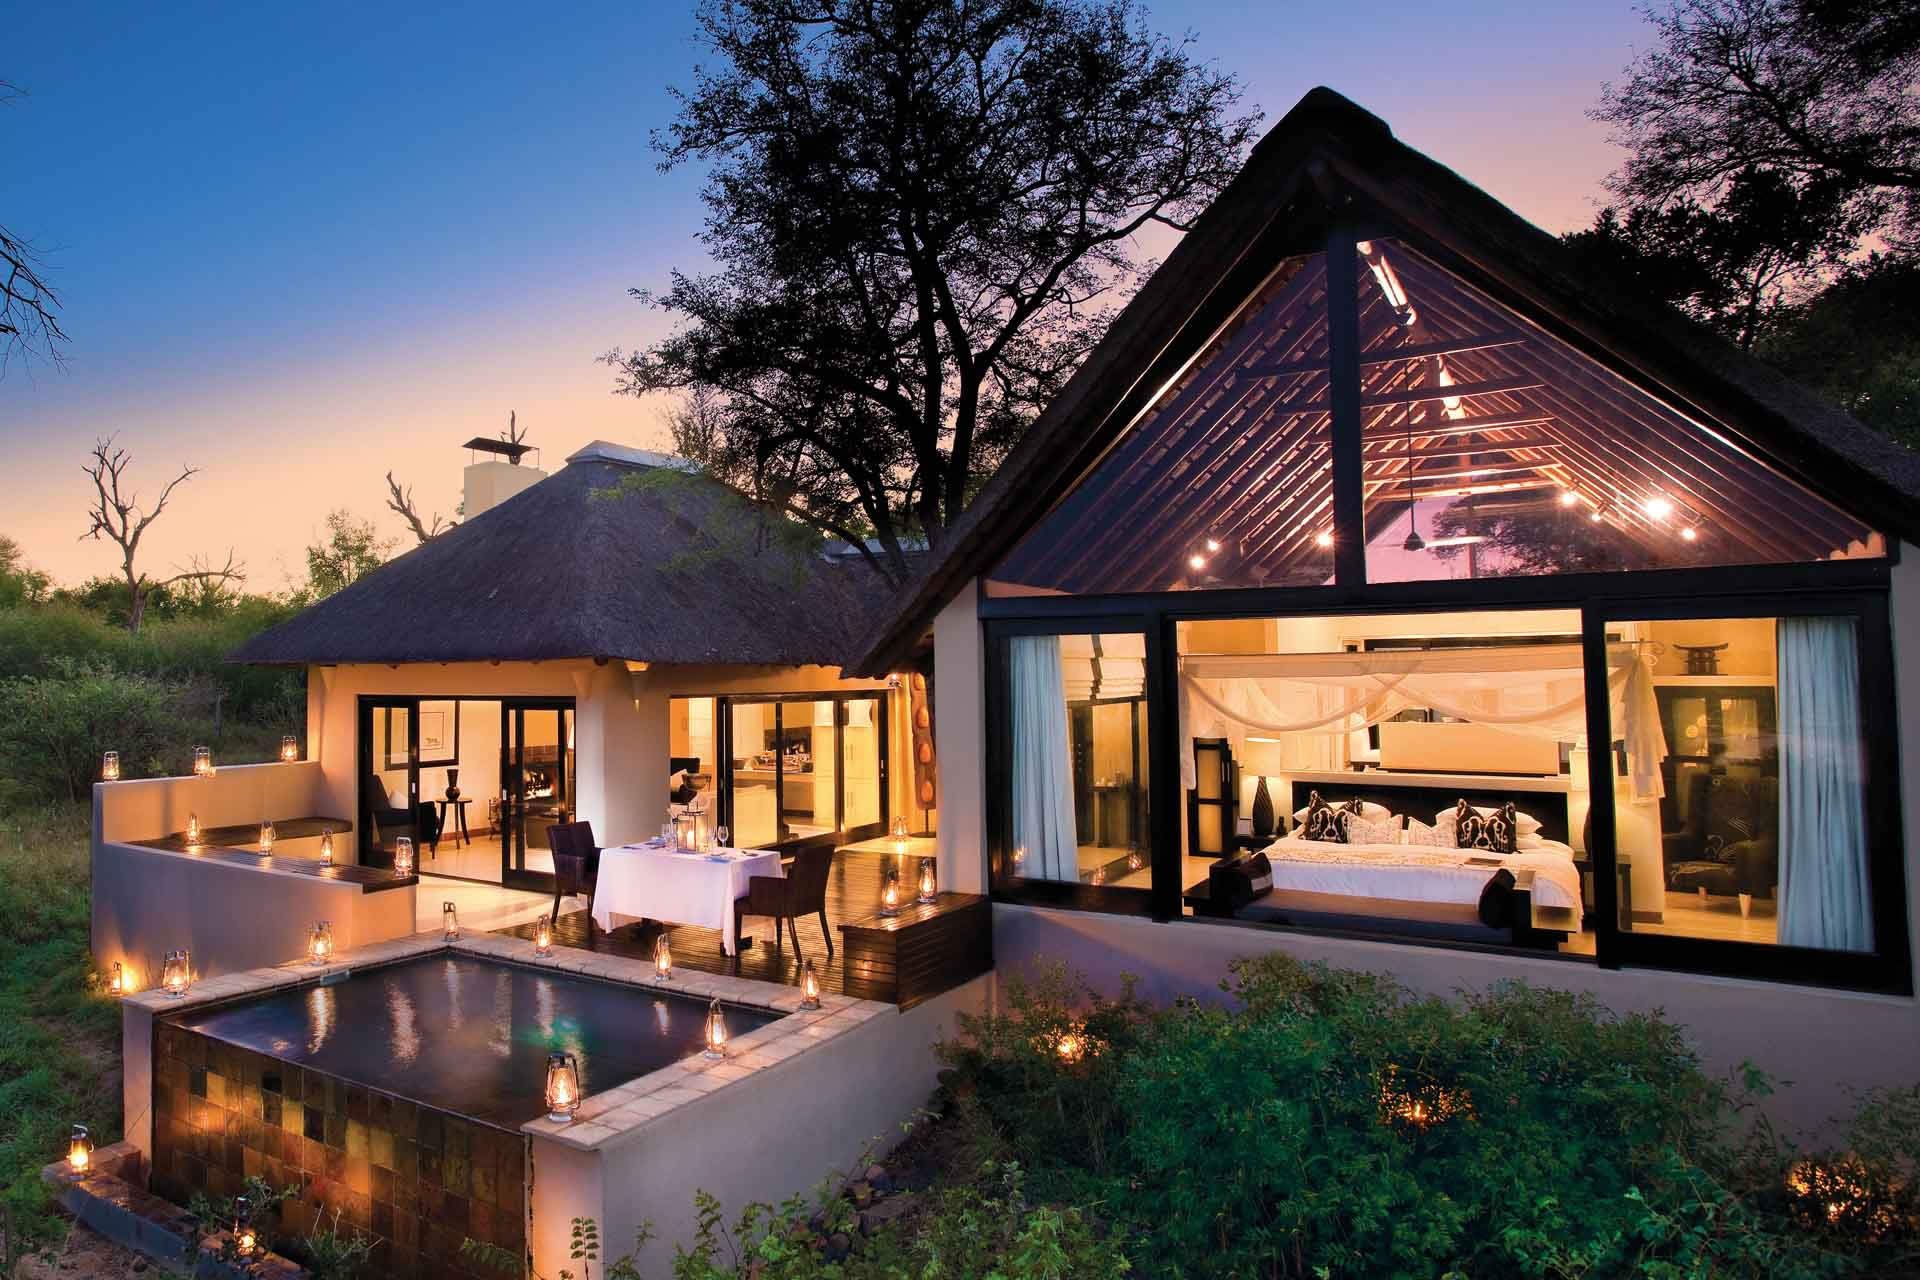 Ivory Sands River Lodge, Sabi Sands, South Africa at night